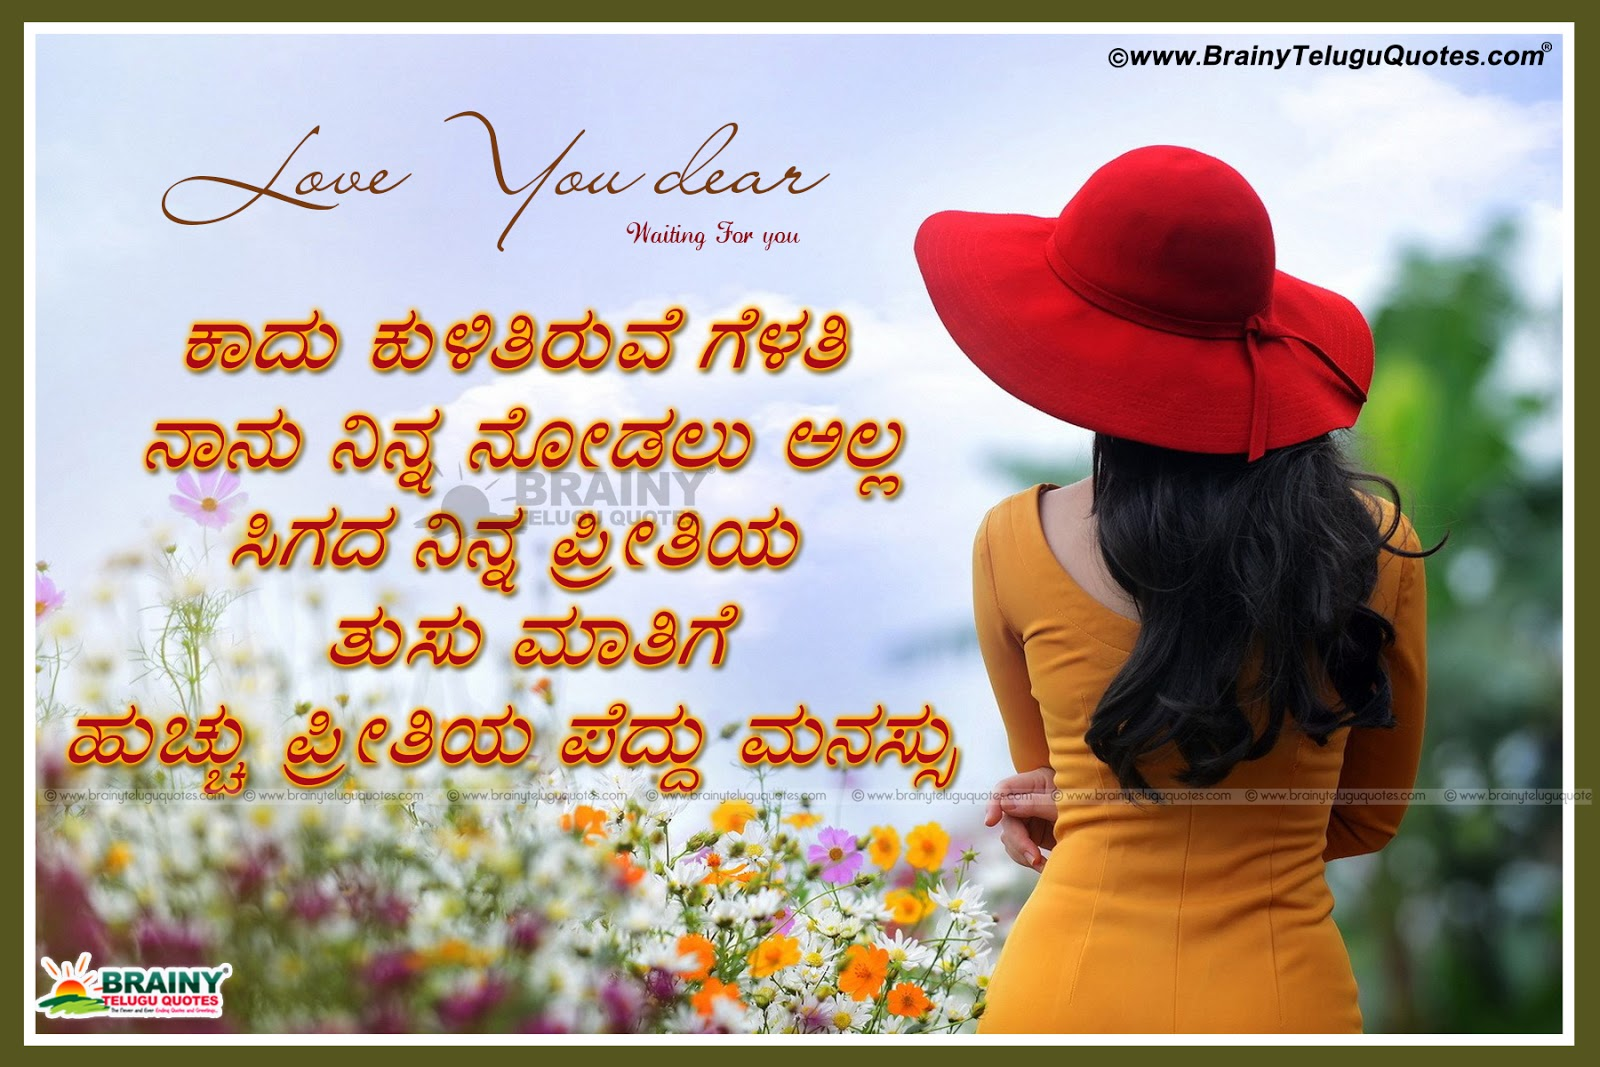 46 quotes in Kannada Love failure quotes in Kannada Sad Kannada Quotes